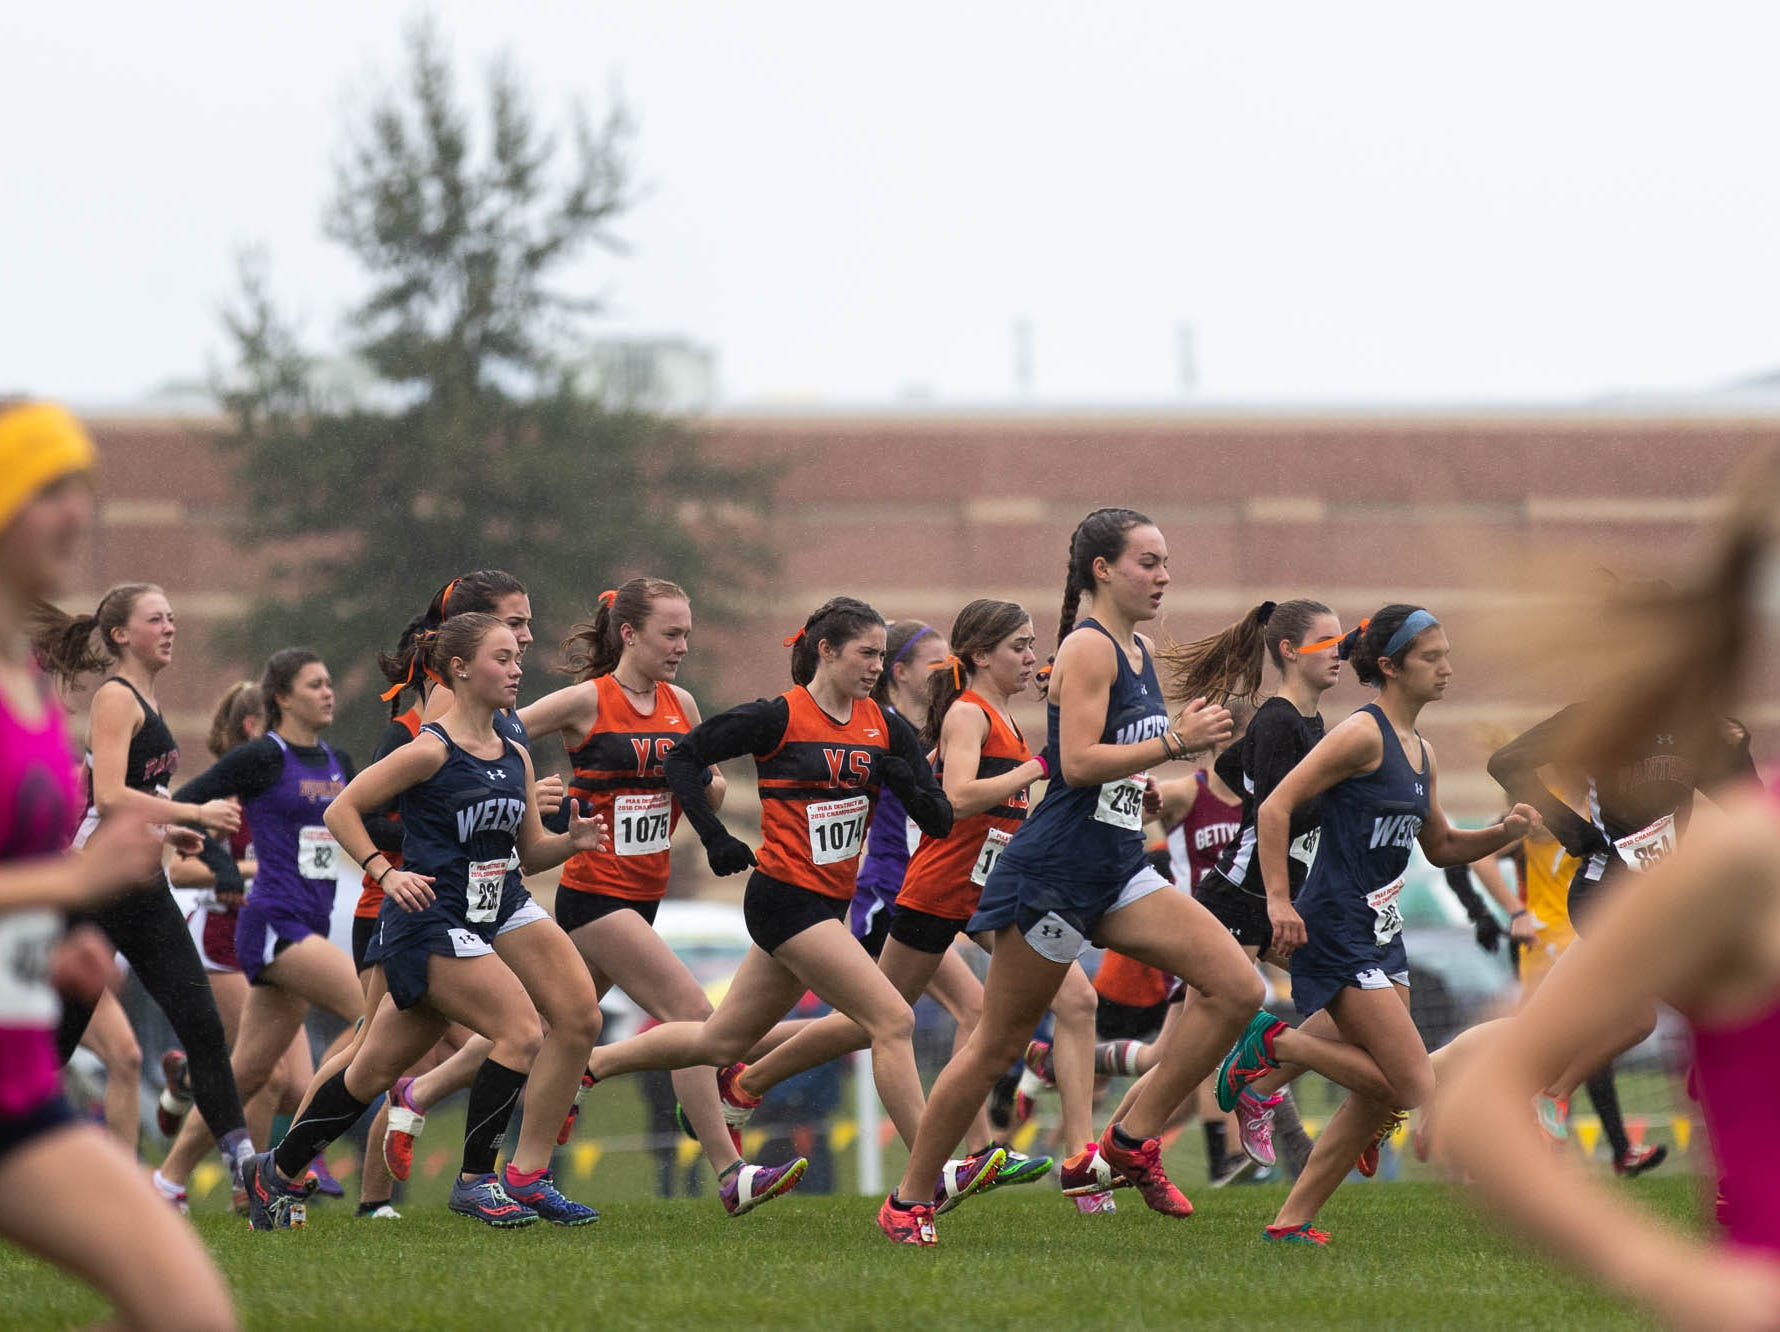 The York Suburban team starts off the Girls AA race during the PIAA District III Cross Country Championship, Saturday, Oct. 27, 2018, at Big Spring High School in Newville.